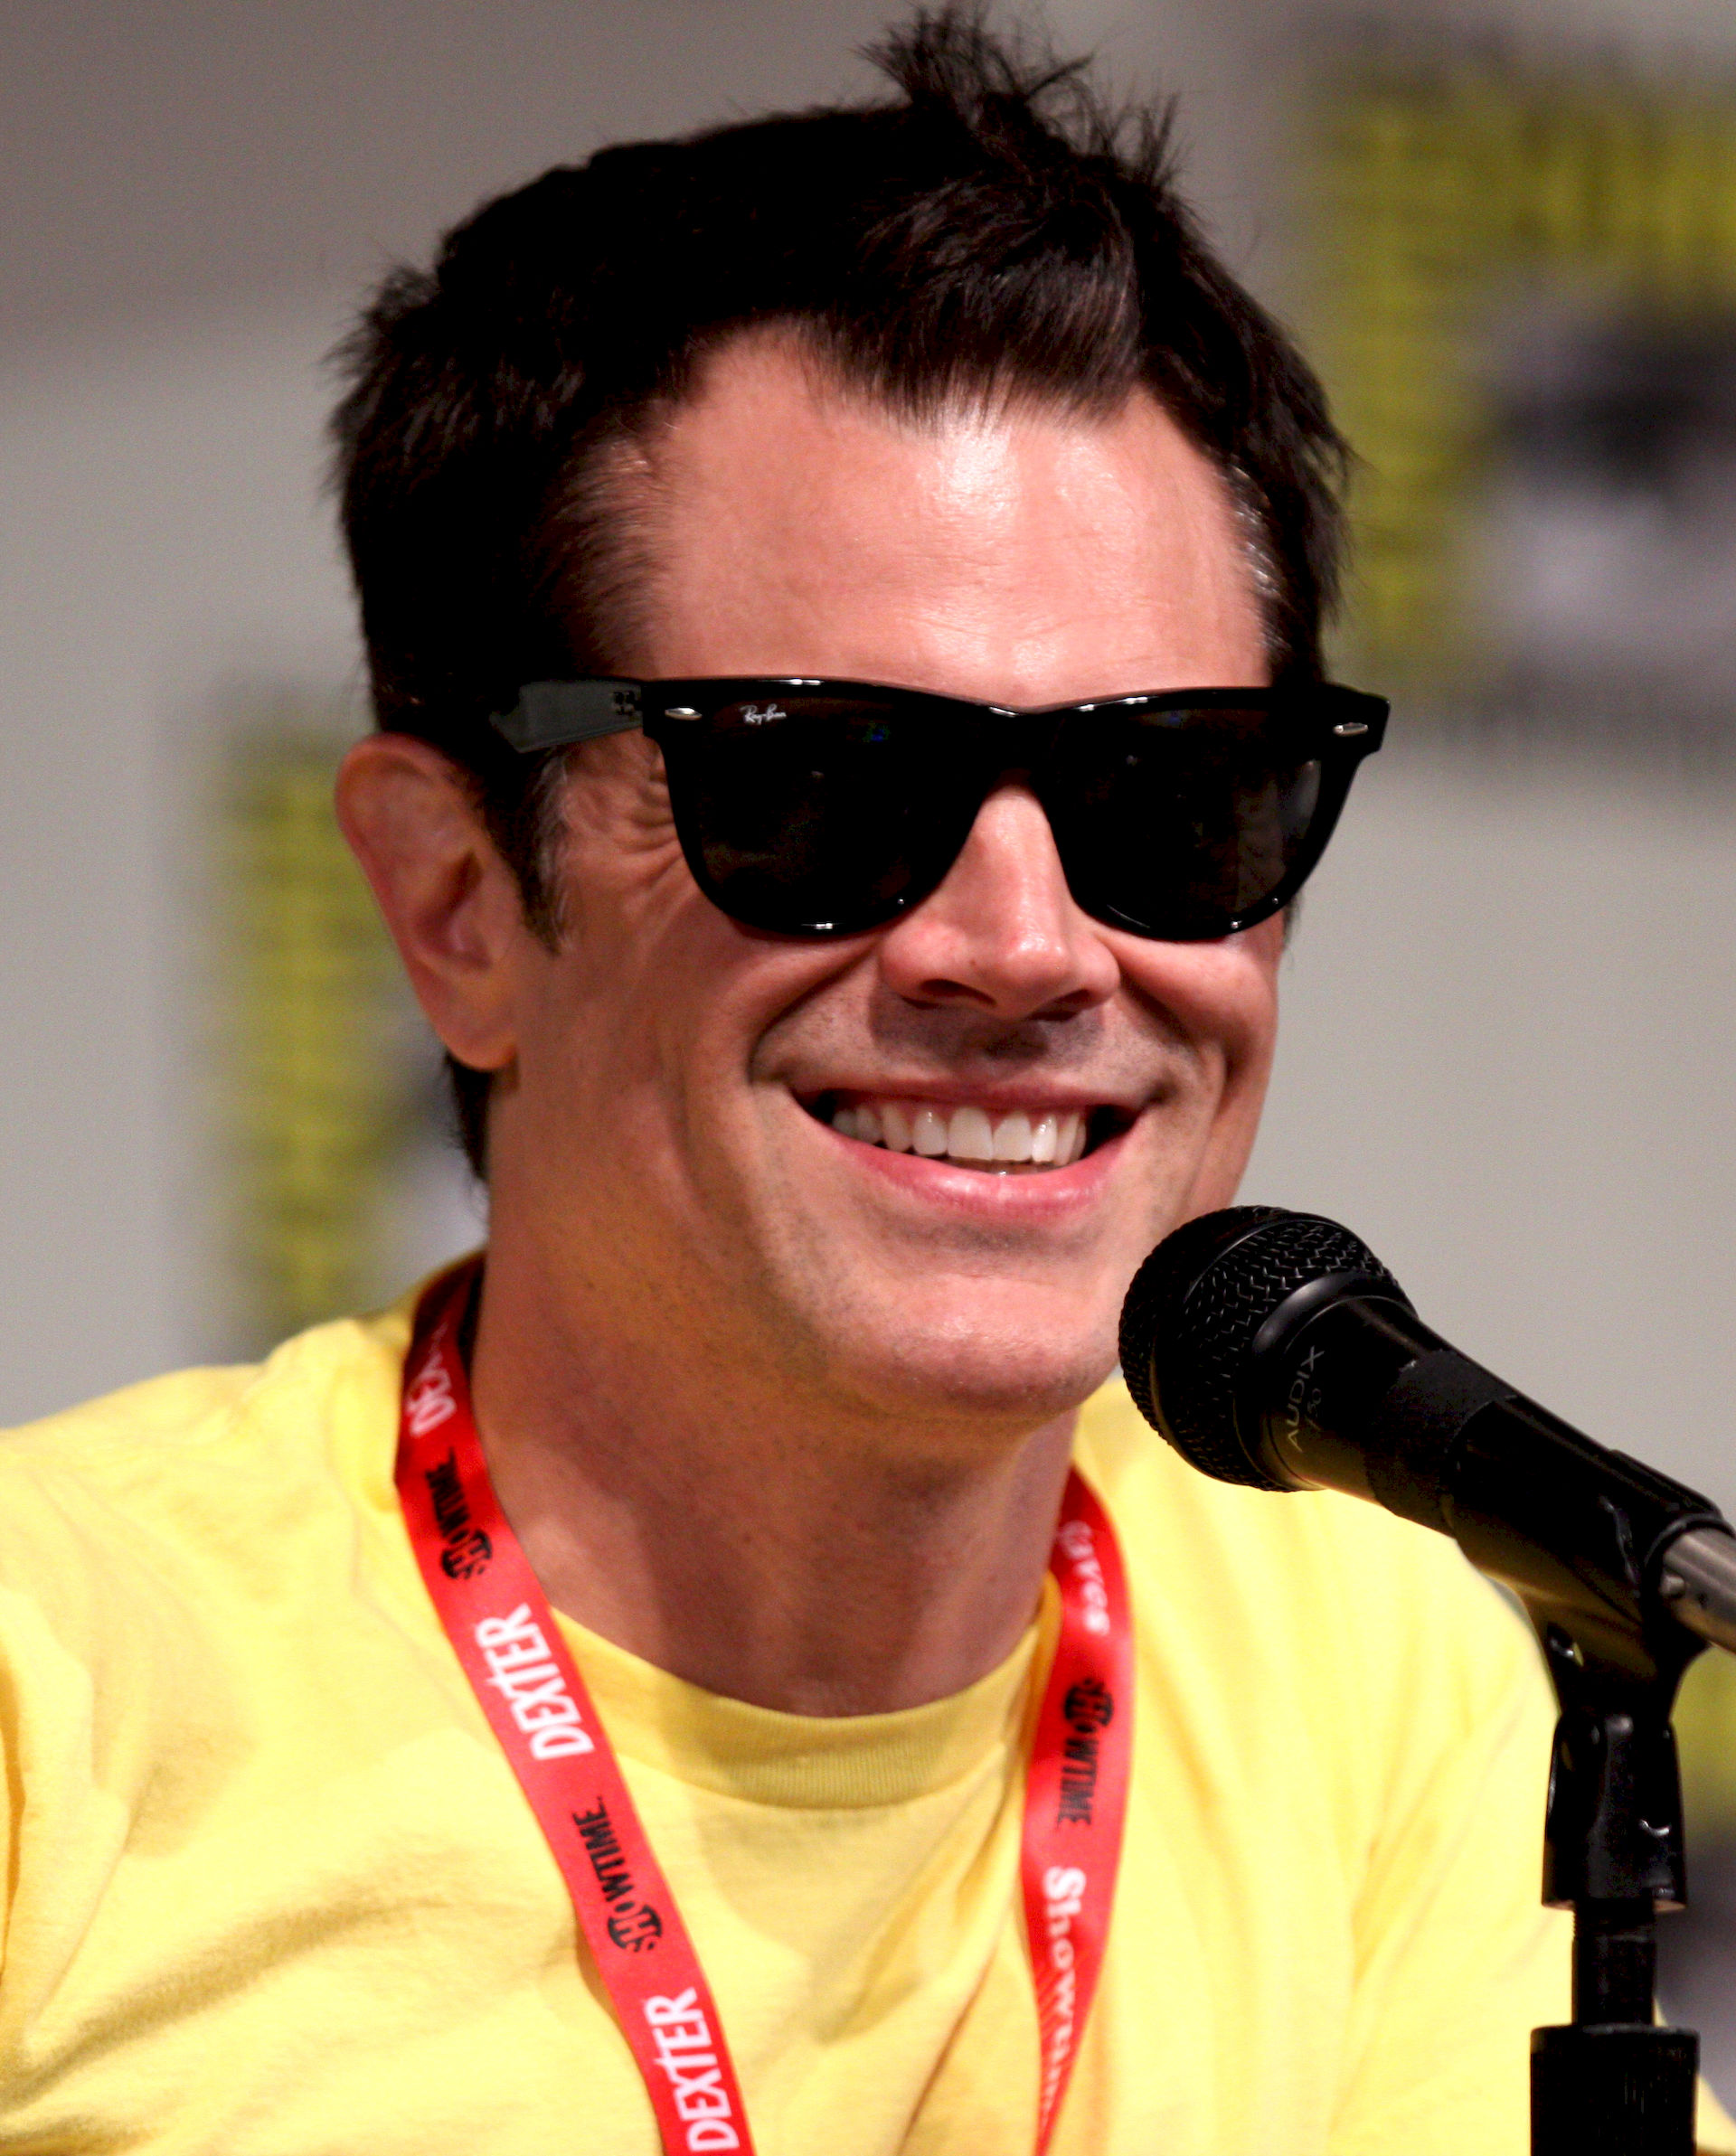 Photo of Johnny Knoxville: American daredevil, actor, comedian, screenwriter and film producer